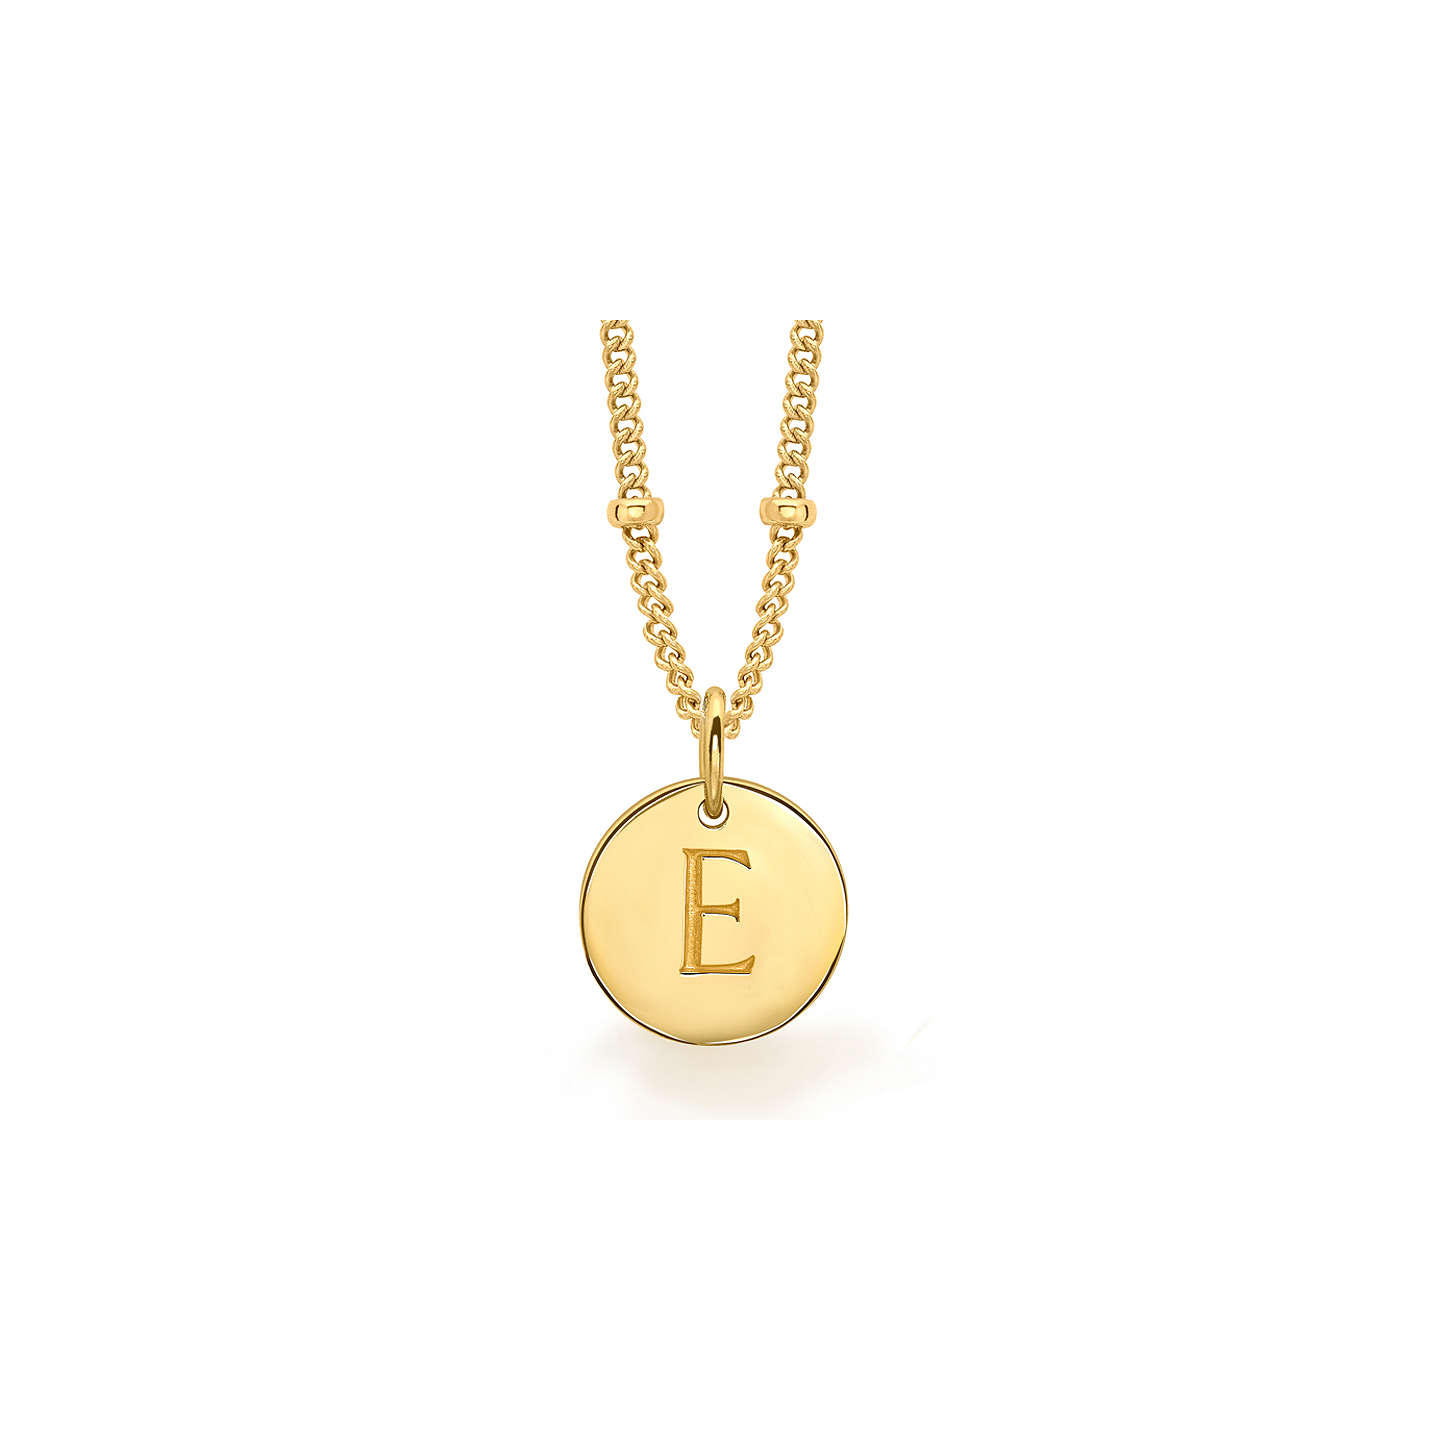 Missoma 18ct gold vermeil initial pendant necklace at john lewis buymissoma 18ct gold vermeil initial pendant necklace e online at johnlewis mozeypictures Image collections